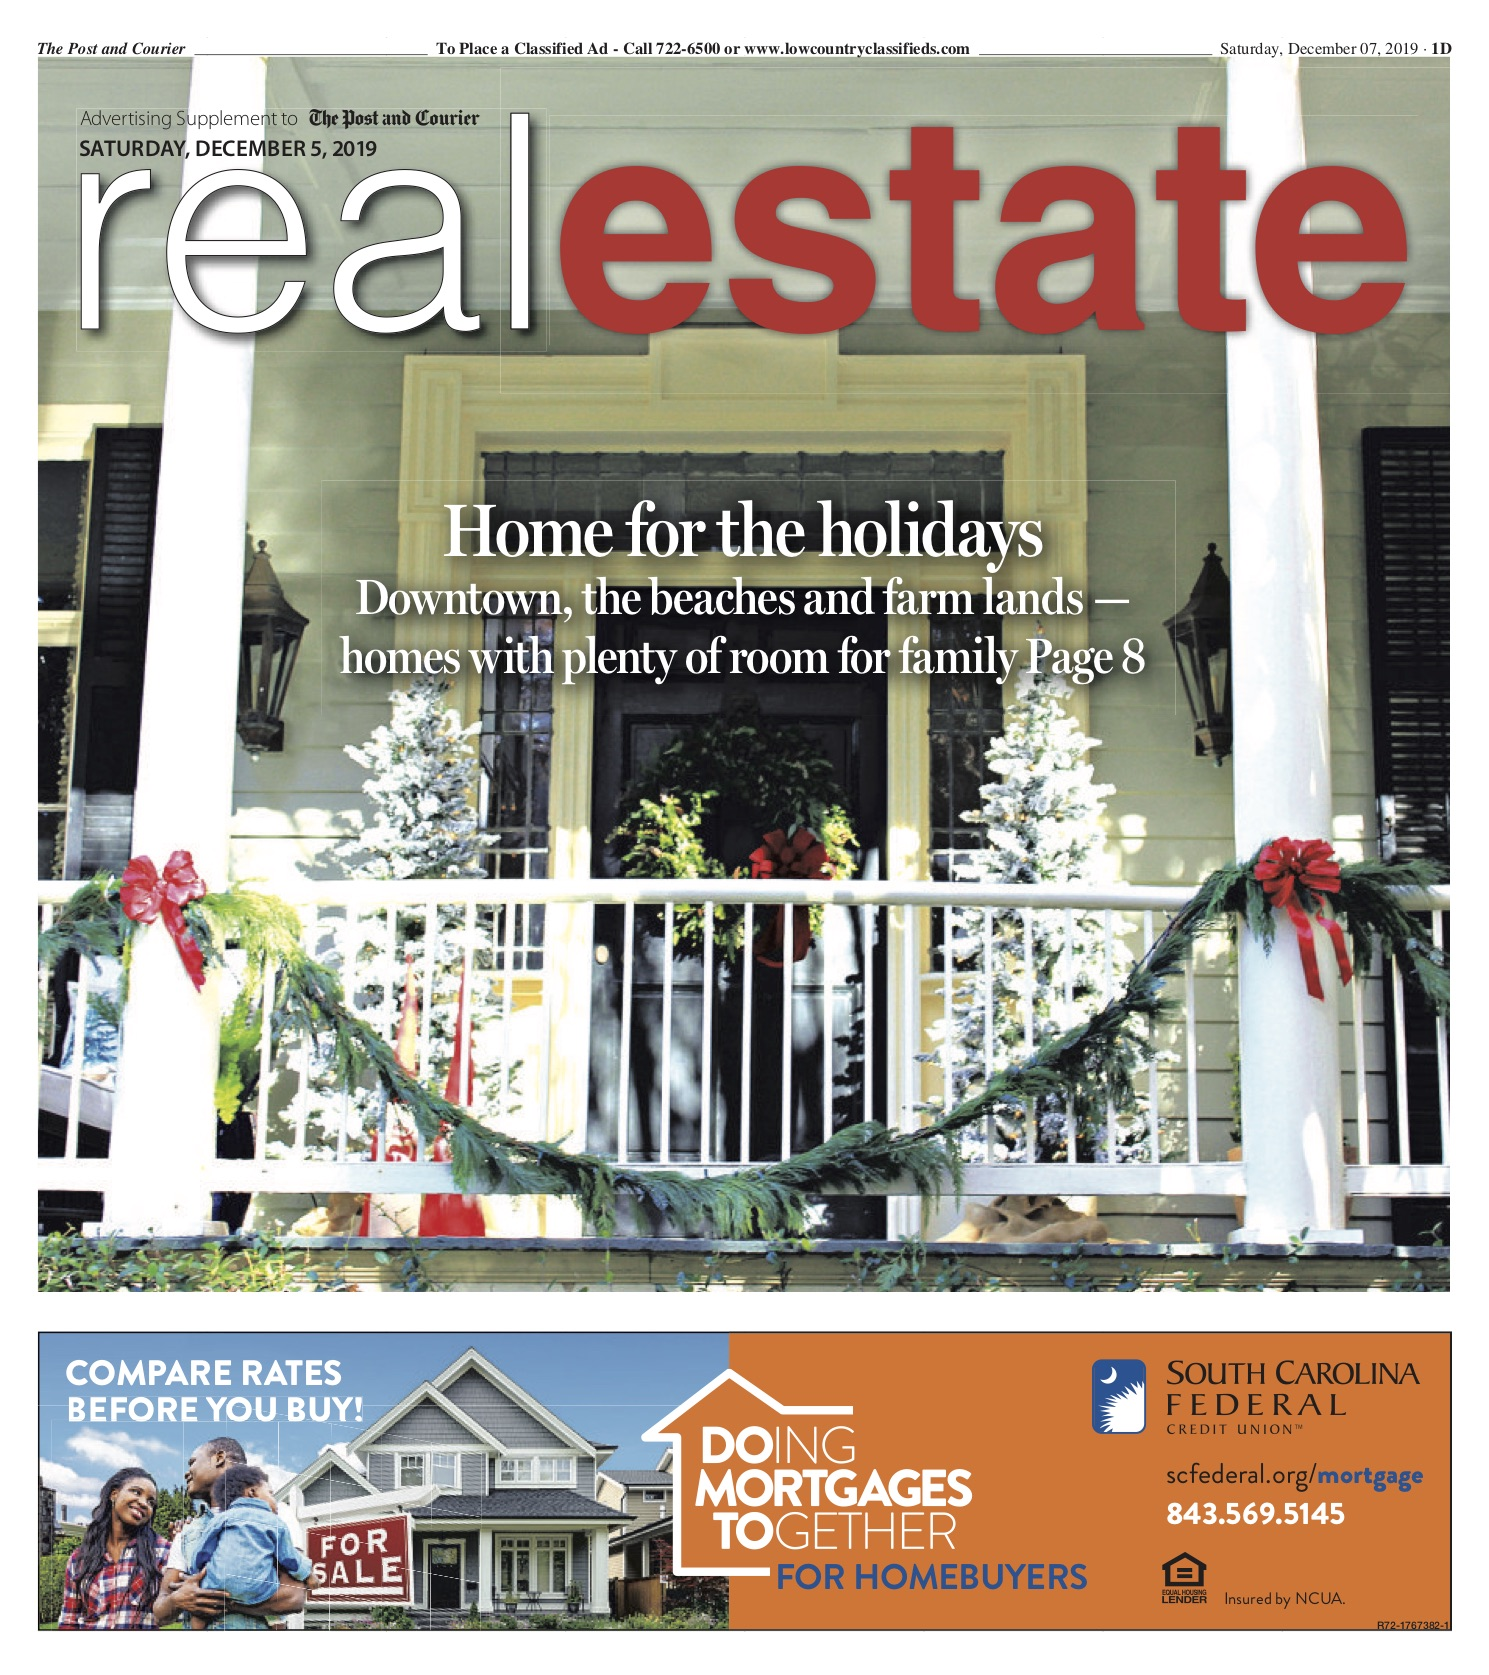 December 2019 - Home for the Holidays article Featuring 29 Legare in the Post and Courier